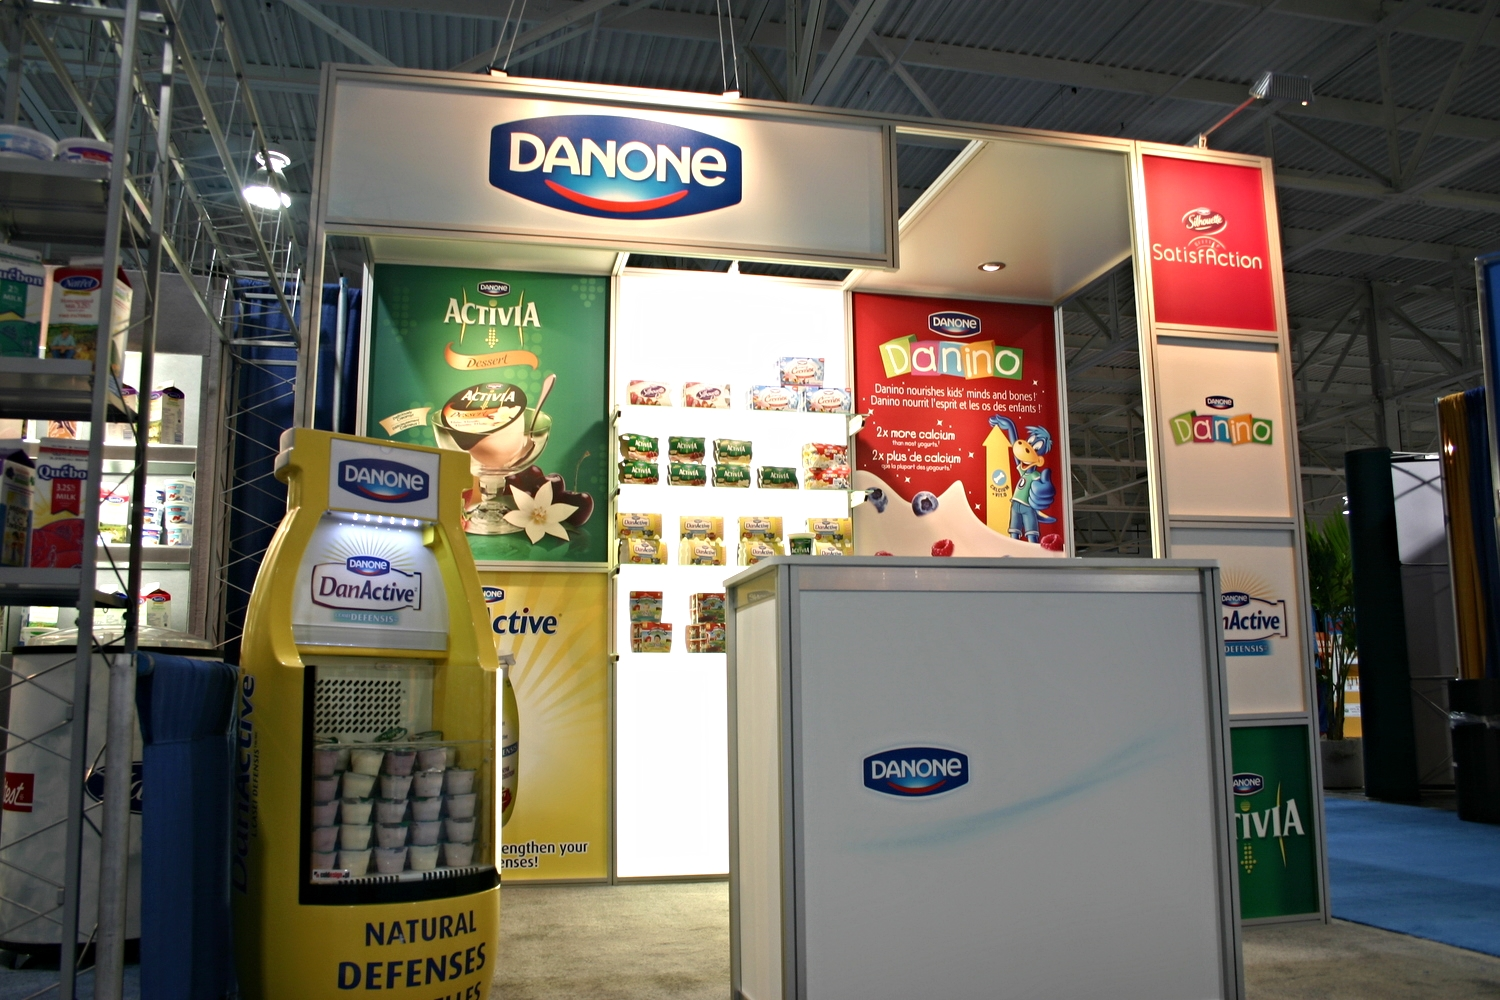 Second trade show photo of Danone's 10' x 10' display rental with printed graphics